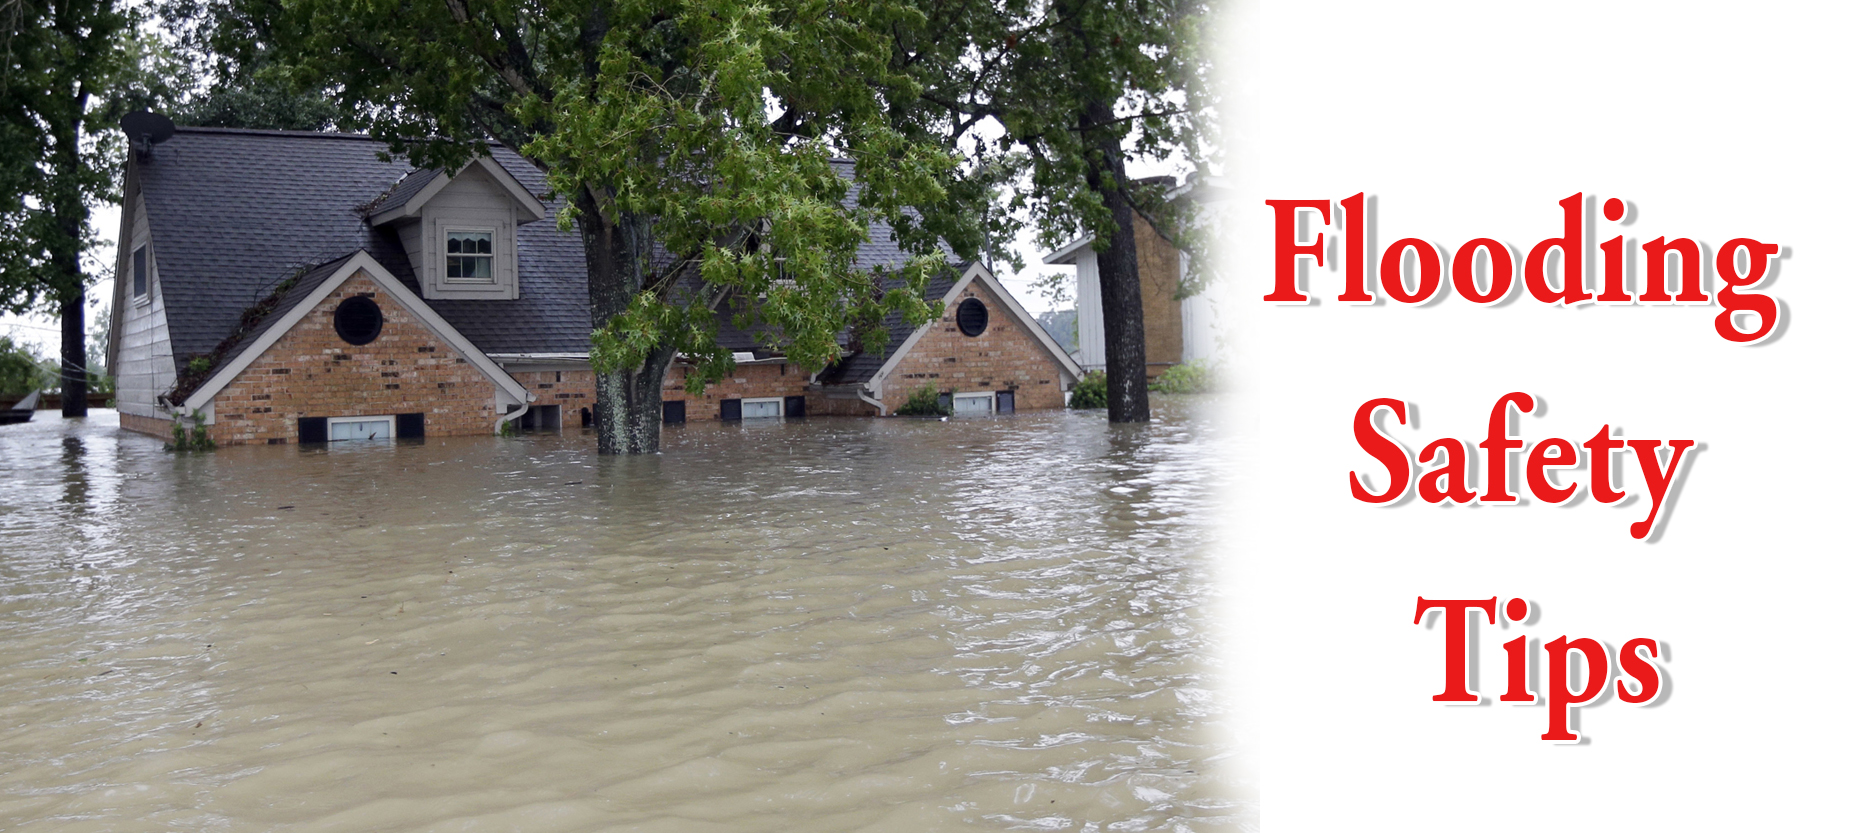 10 BASIC HEALTH PRECAUTIONS TO BE TAKEN IN FLOOD-AFFECTED AREAS